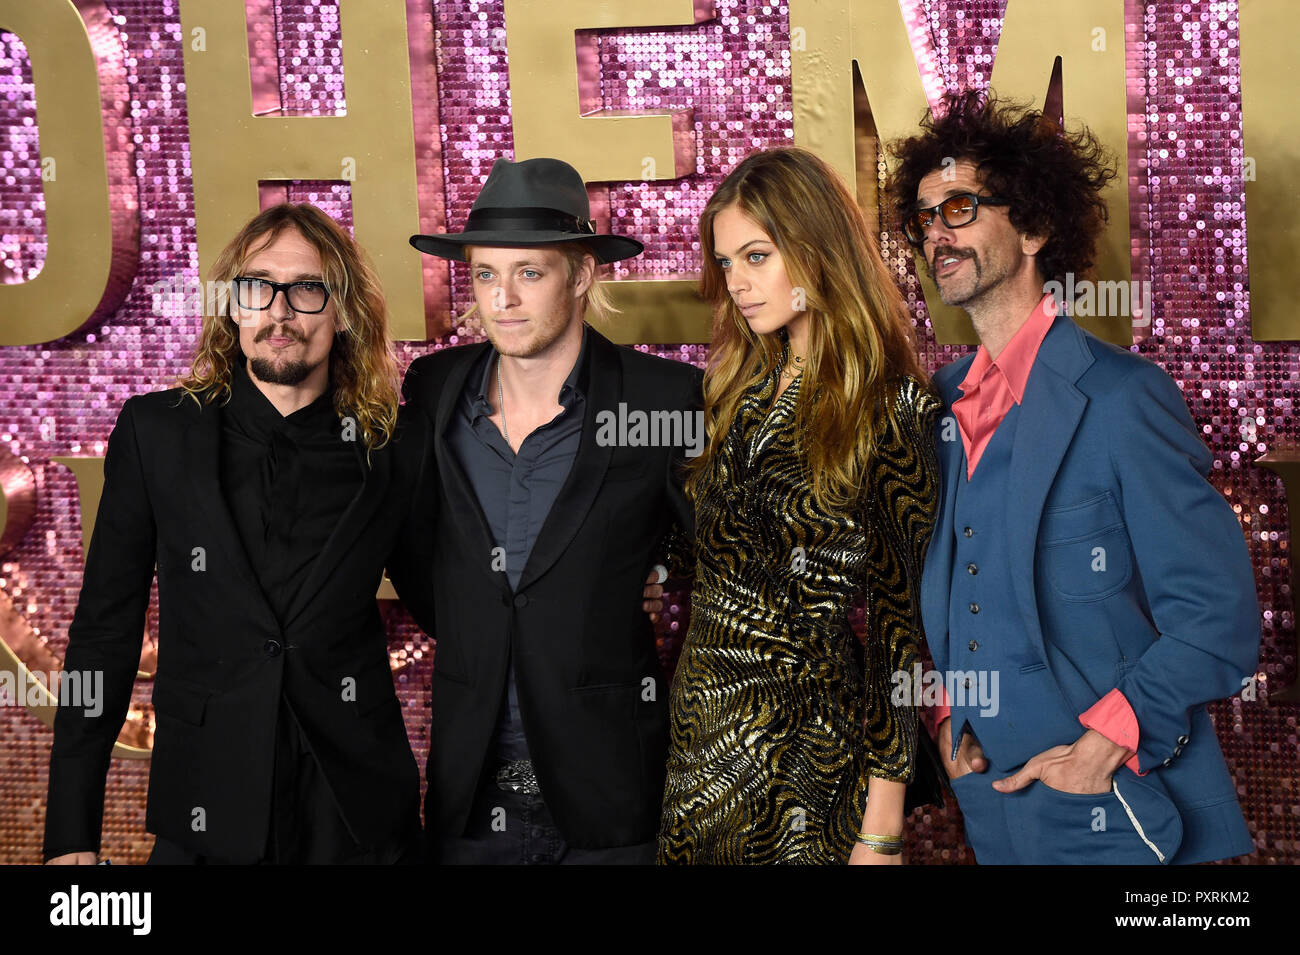 London, UK.  23 October 2018. The Darkness band arrives for the worldwide premiere of the movie 'Bohemian Rhapsody' at The SSE Arena in Wembley. Credit: Stephen Chung / Alamy Live News - Stock Image